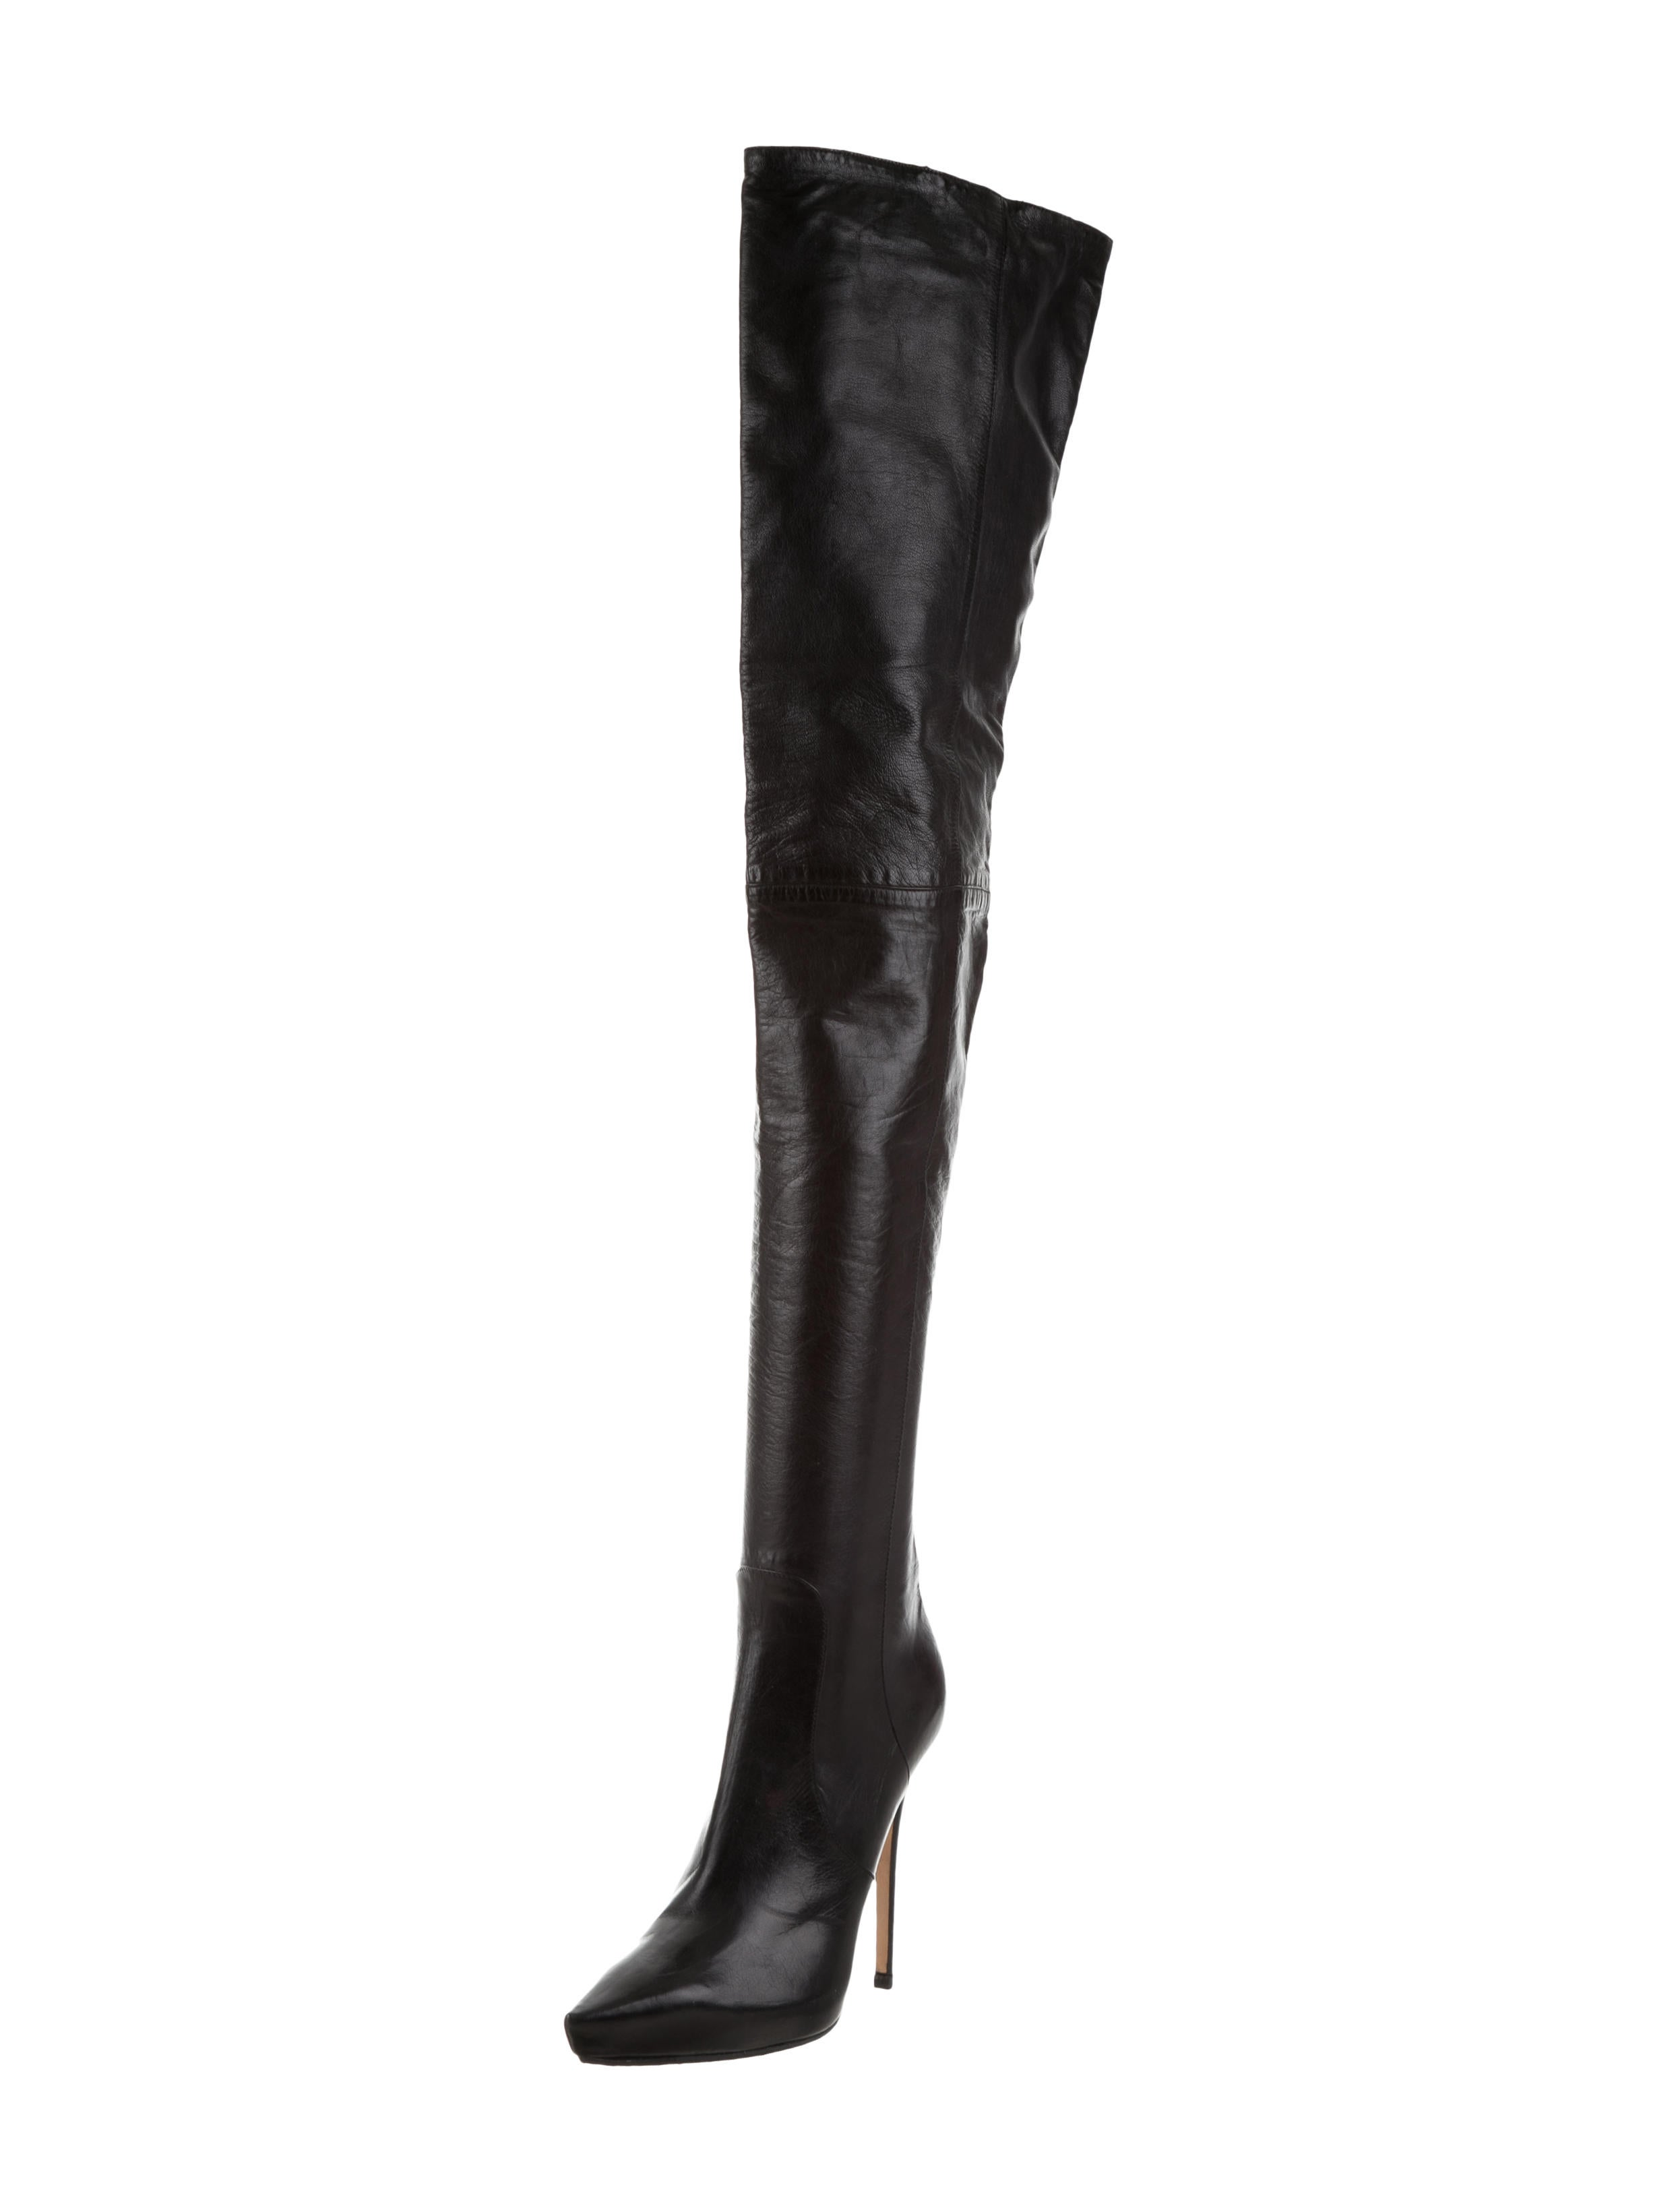 aed48783a6f Jimmy Choo Leather Thigh-High Boots - Shoes - JIM75422